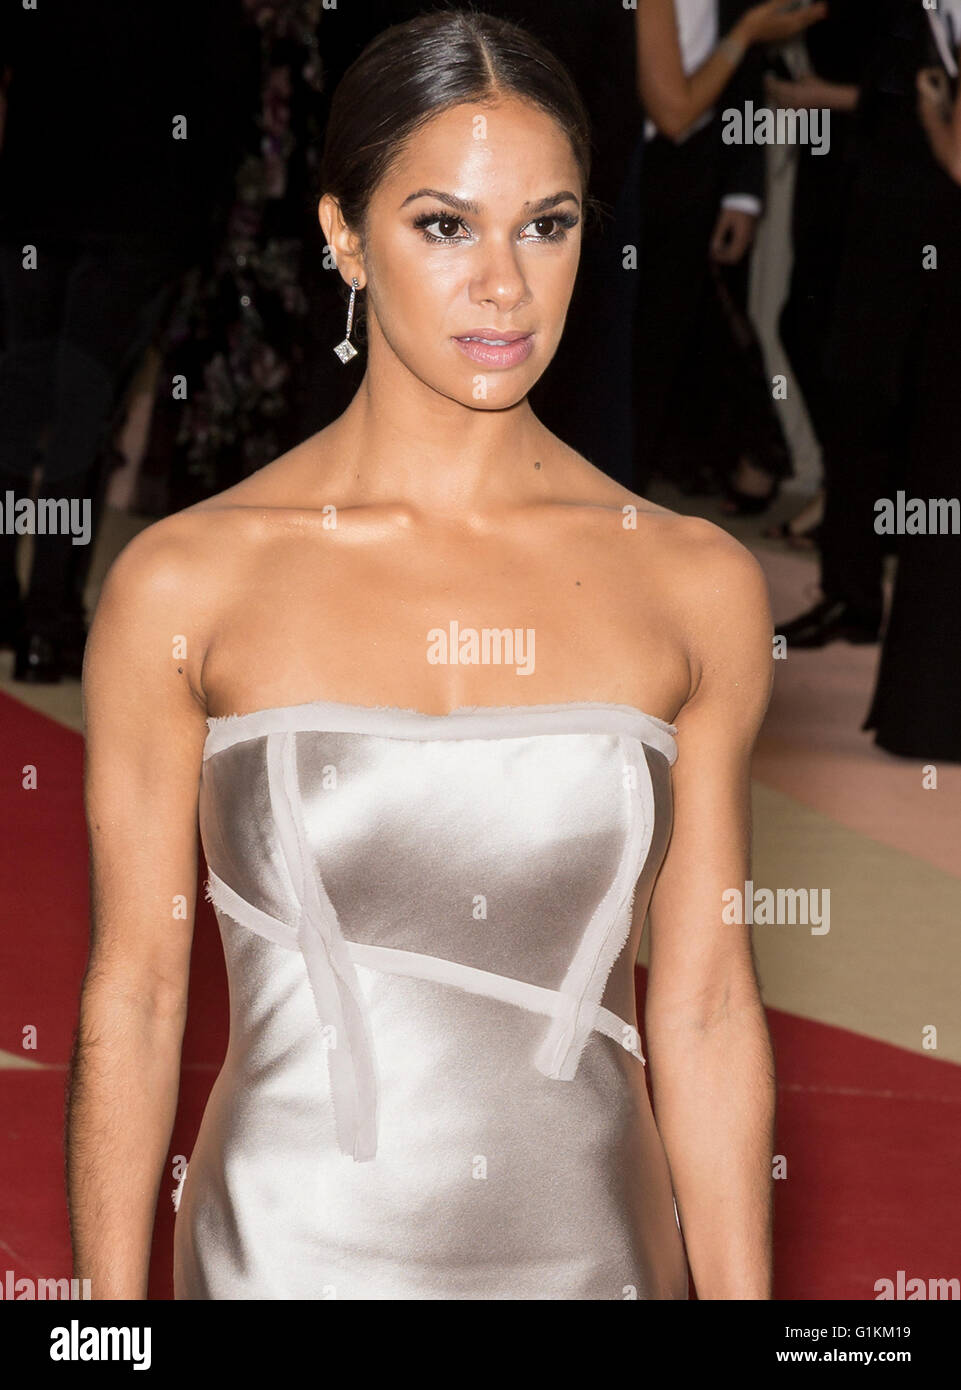 New York City, USA - May 2, 2016: Misty Copeland attends the 2016 Met Gala - Stock Image